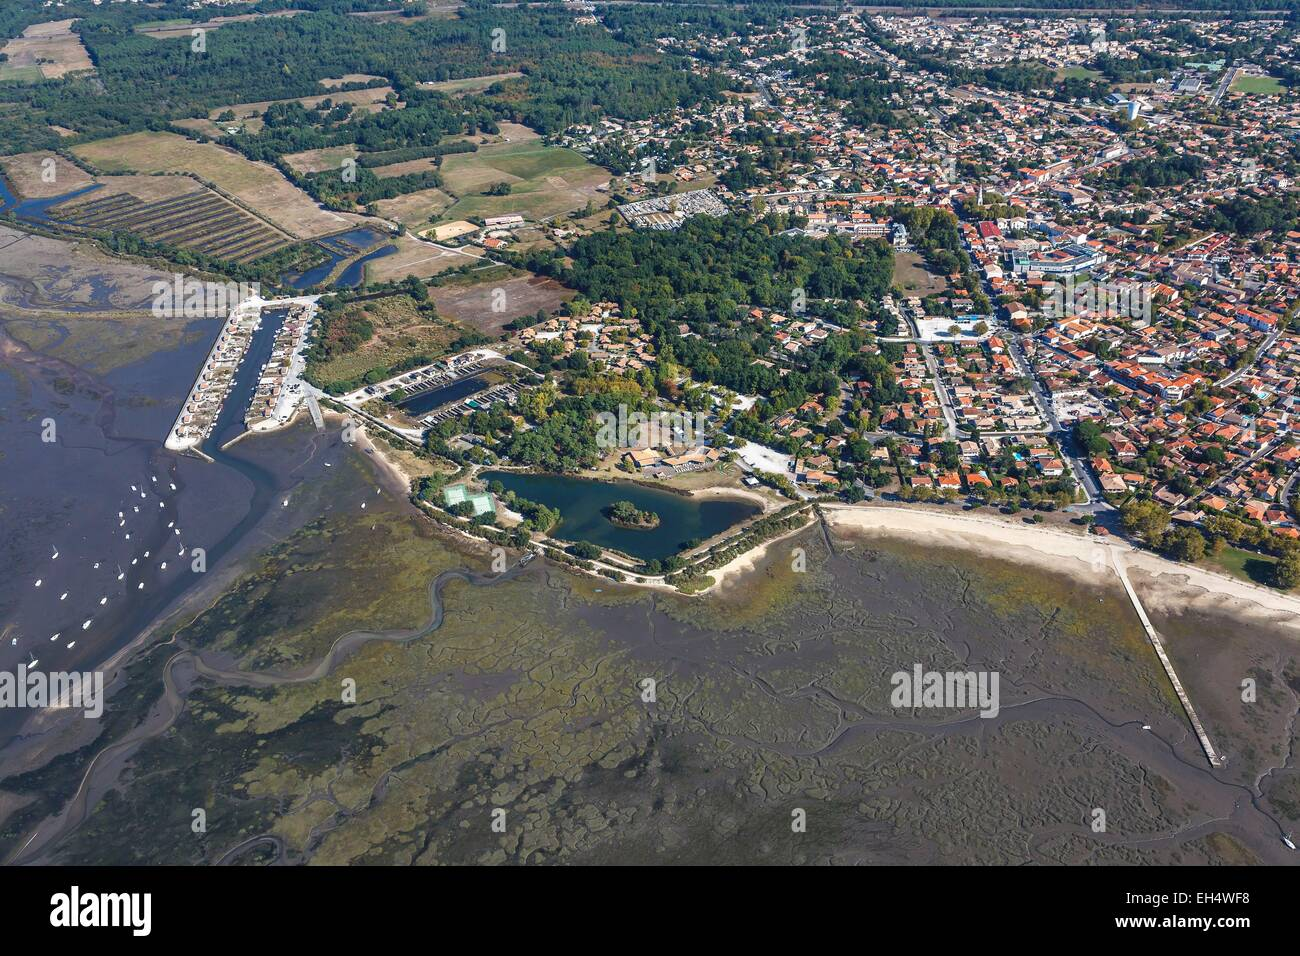 France, Gironde, Ares, the seaside resort on the Bassin d'Arcachon (aerial view) - Stock Image